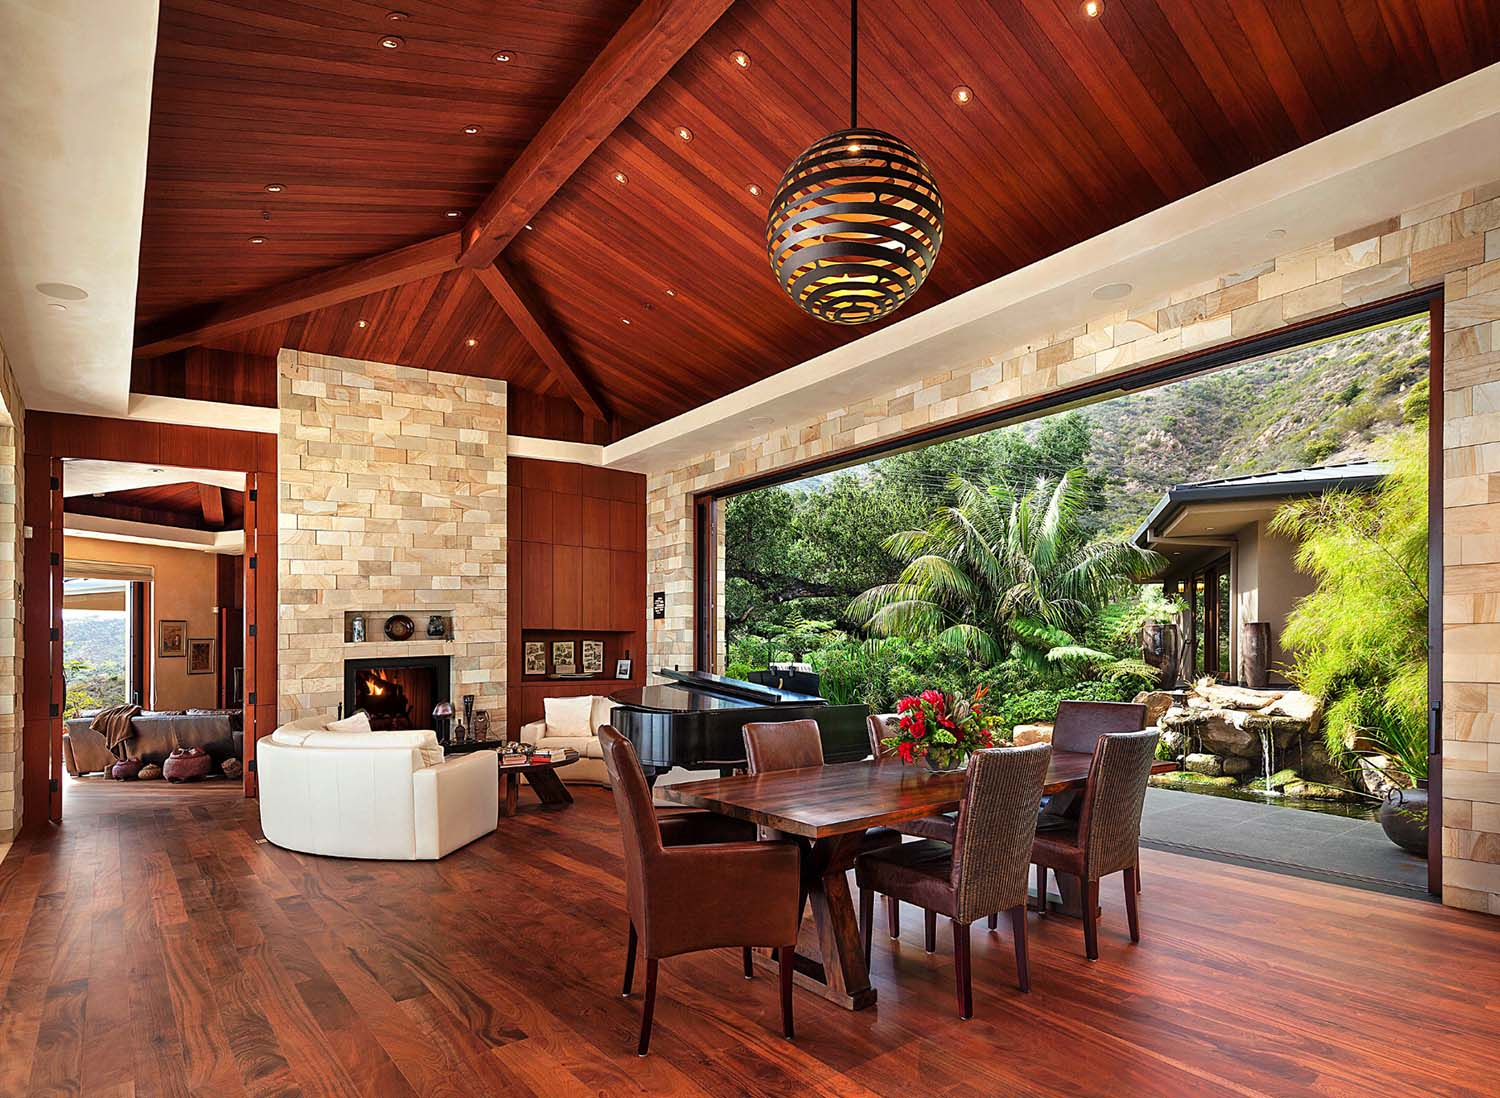 Indoor outdoor living overlooks pacific ocean for Home plans with outdoor living spaces